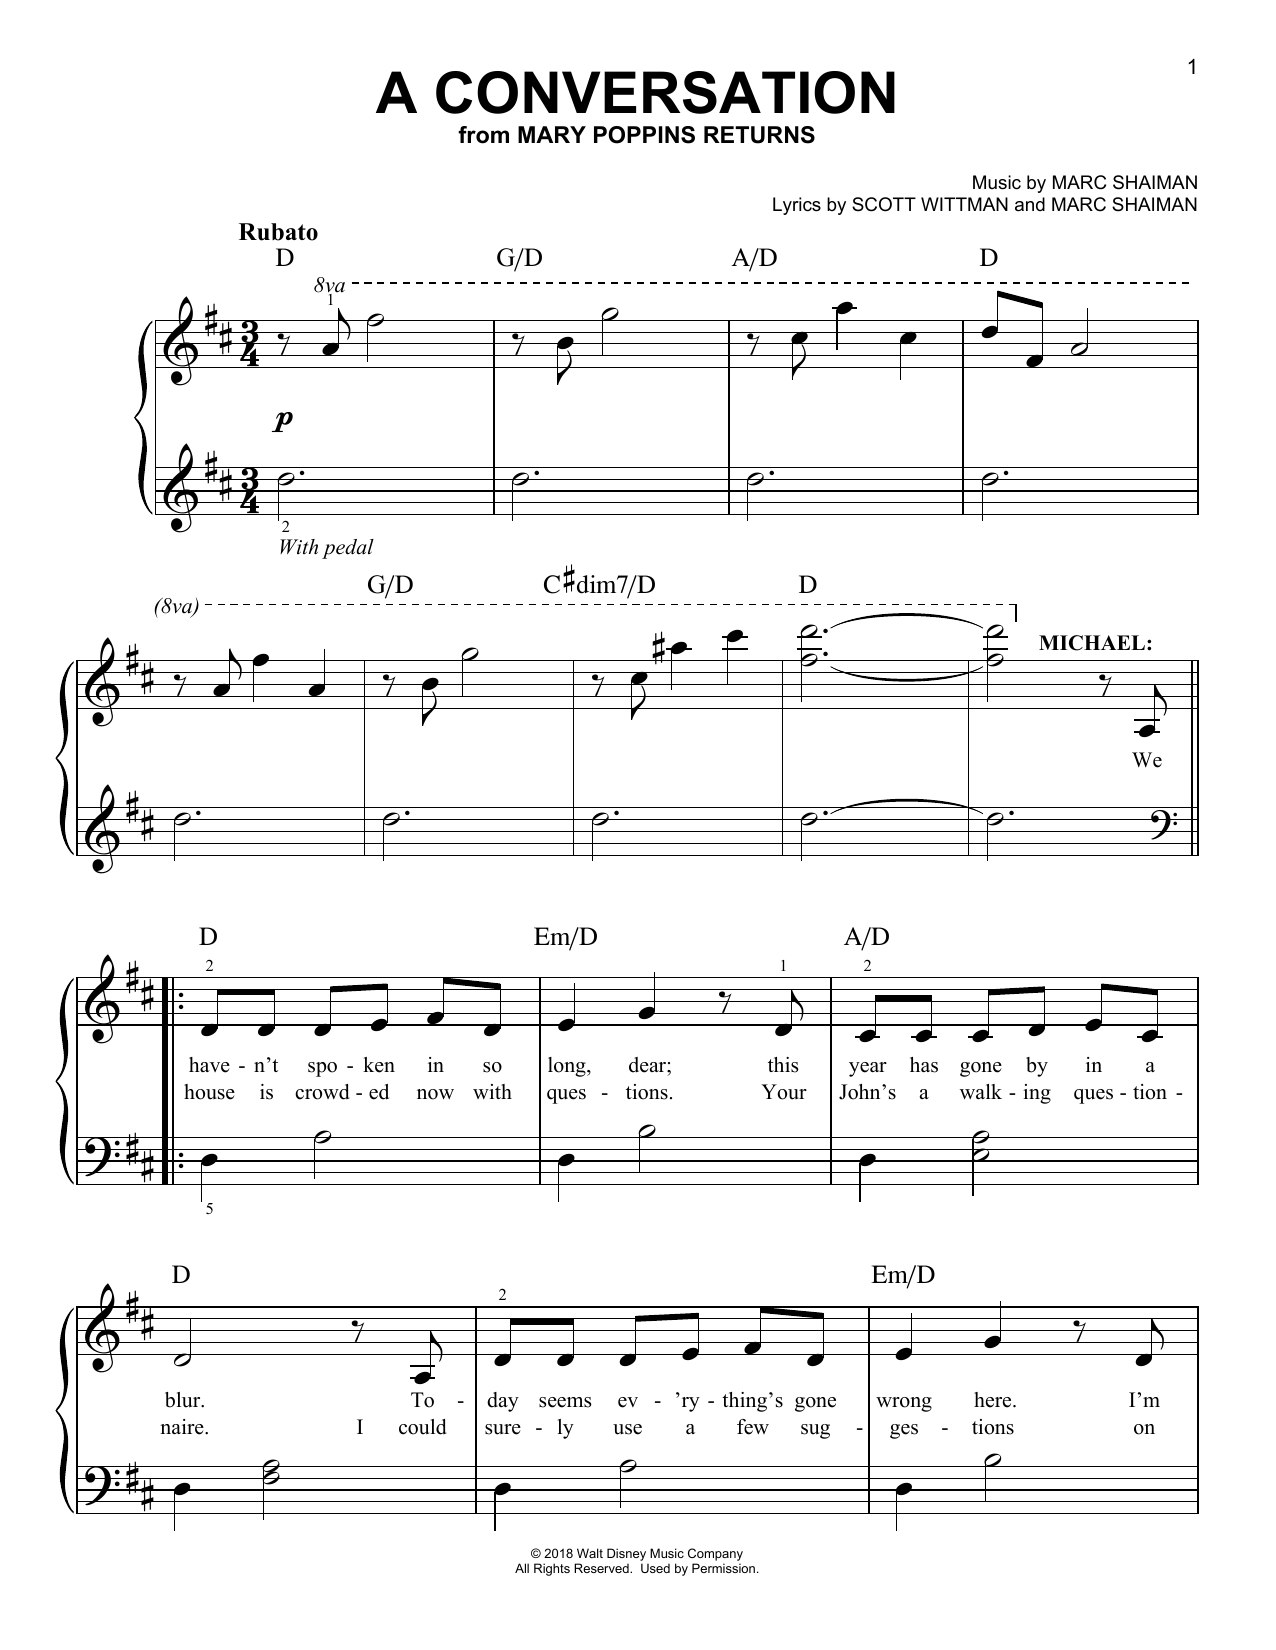 Ben Whishaw A Conversation (from Mary Poppins Returns) sheet music notes and chords. Download Printable PDF.